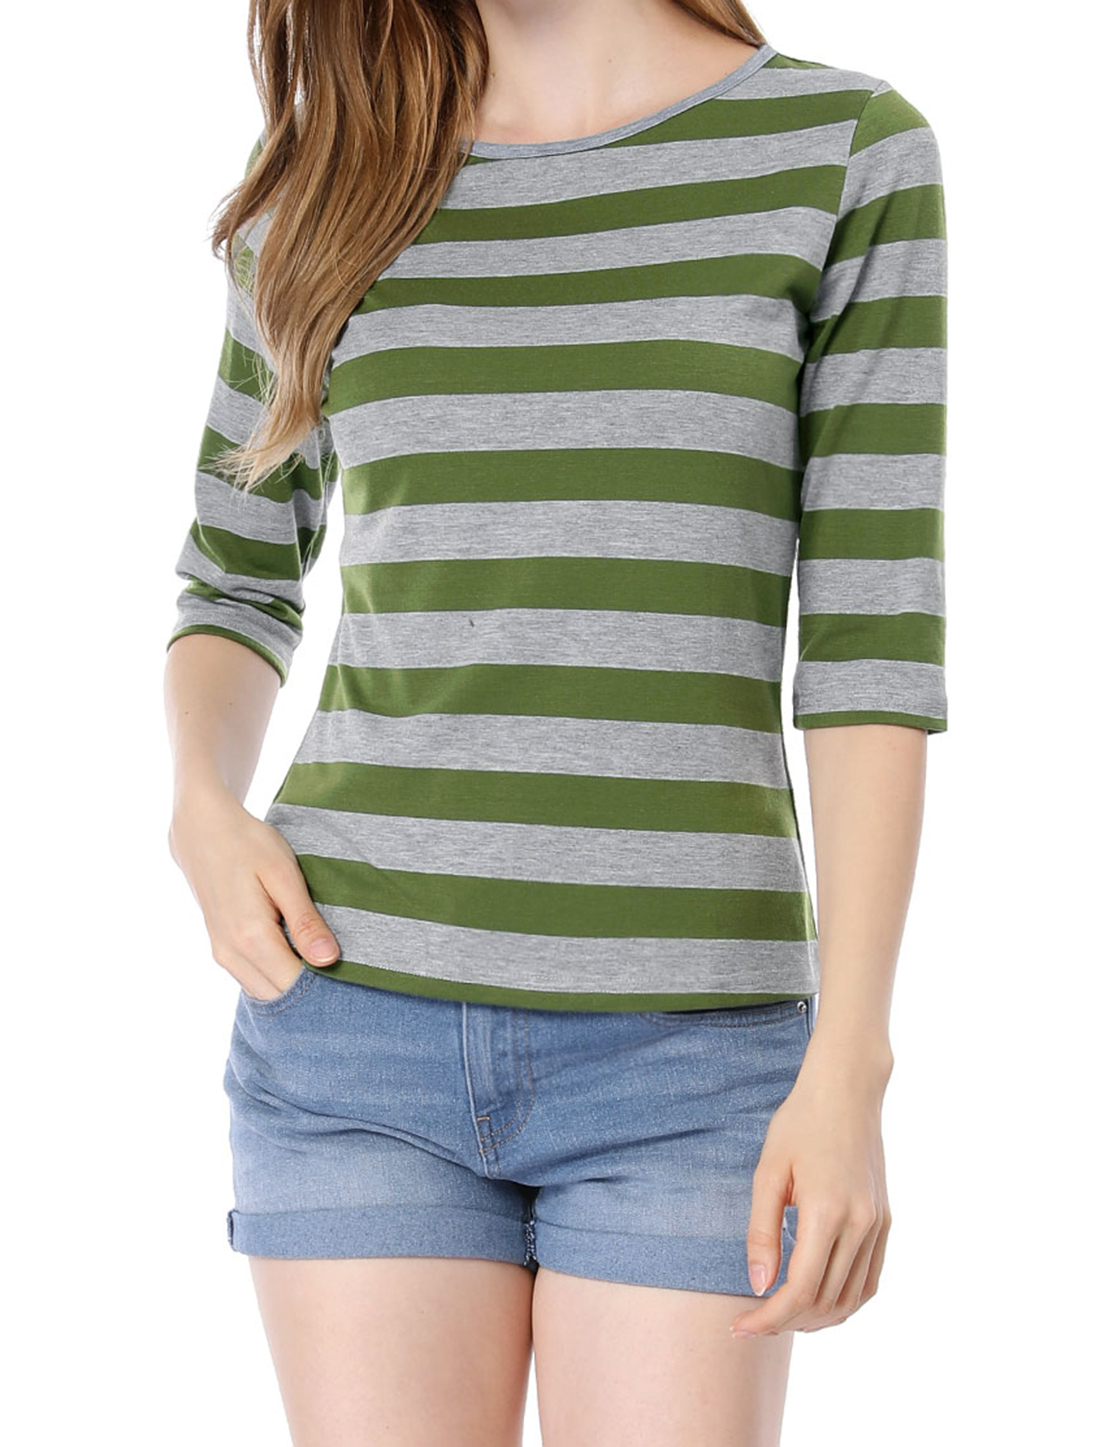 Women 1/2 Sleeves Contrast Color Stripes T-shirt Green Gray XL